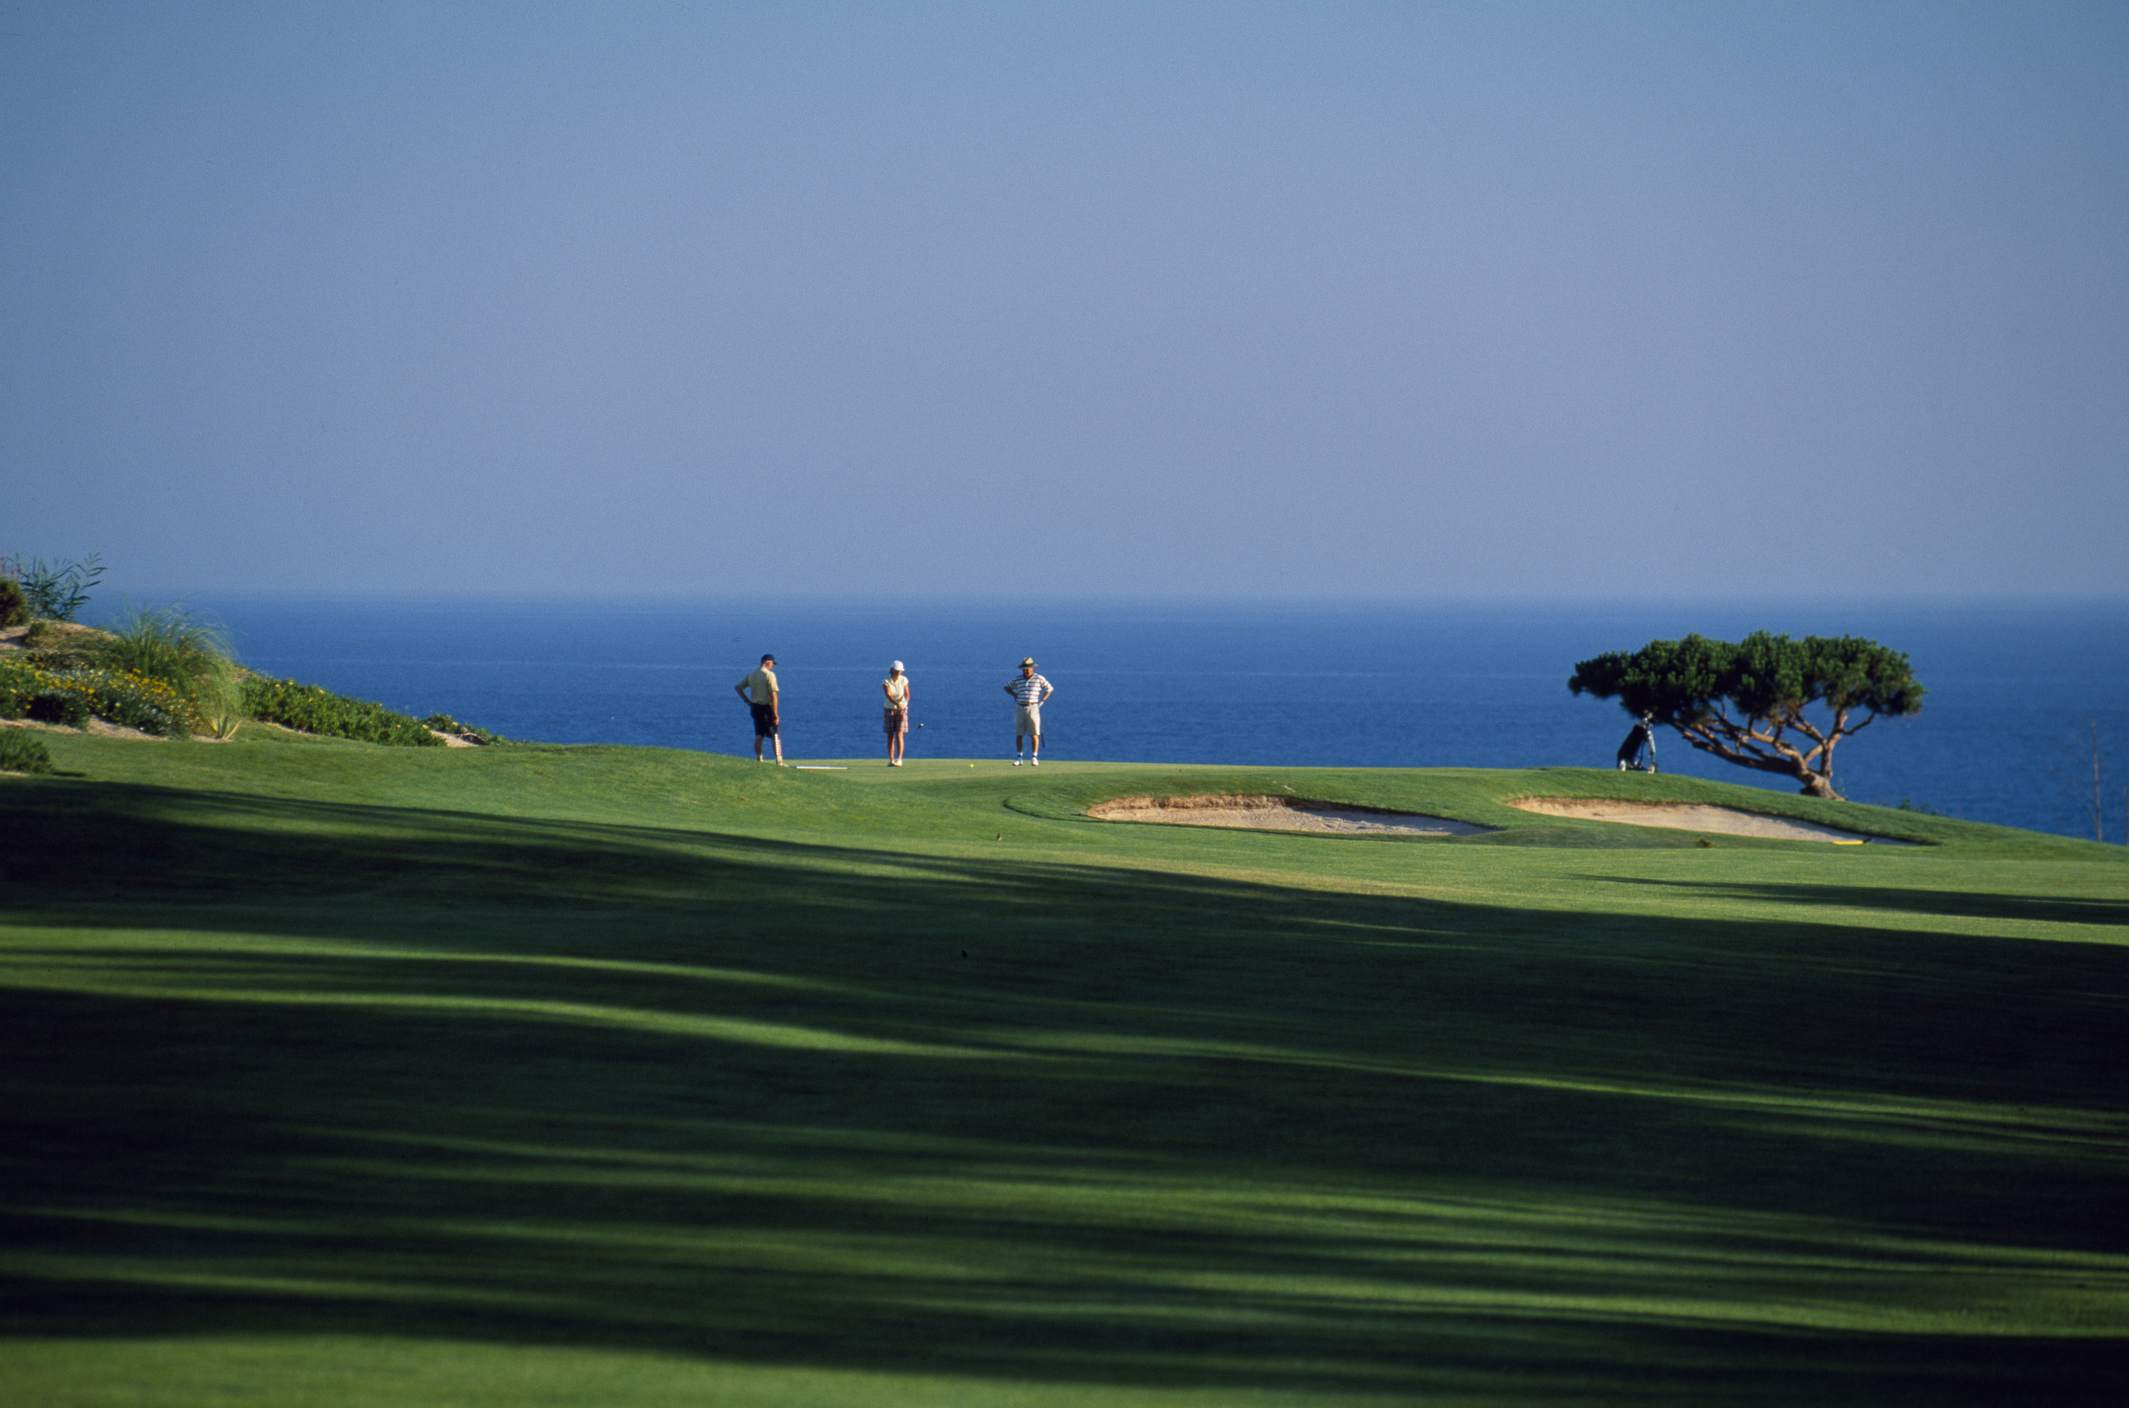 Portugal, Algarve, Val do Lobo. Golfers play on the championship course